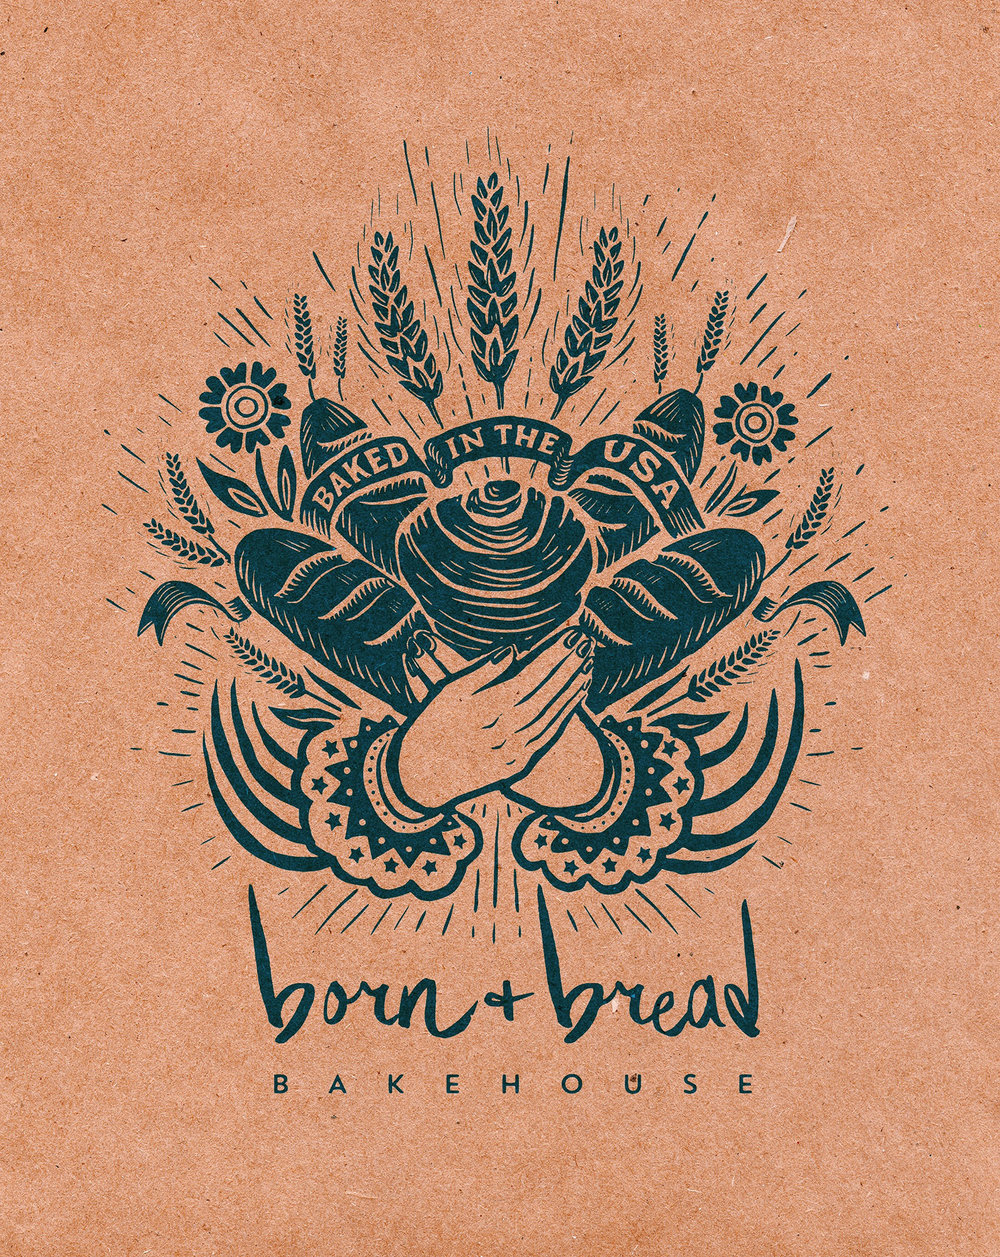 Born + Bread Bakehouse bag design